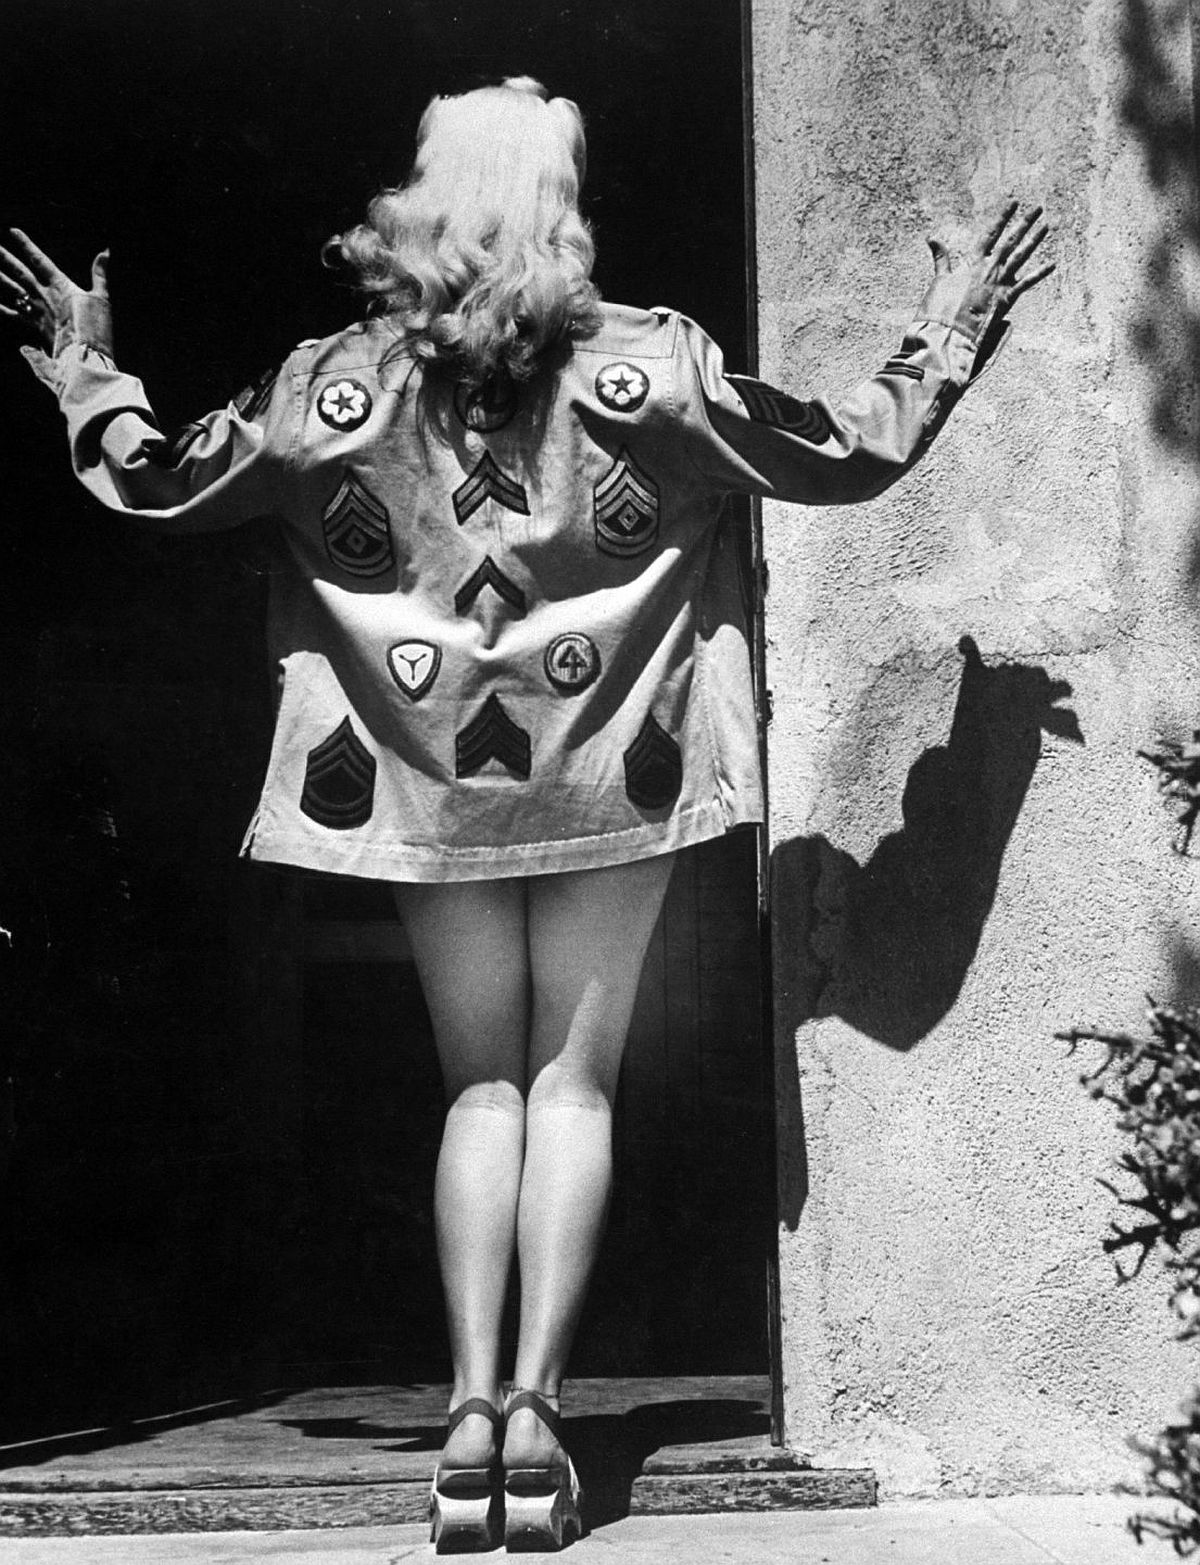 Betty models a coat of her own design which features decorations of Army corps and rank insignia. Betty is one of the biggest pin-up favorites of servicemen everywhere.